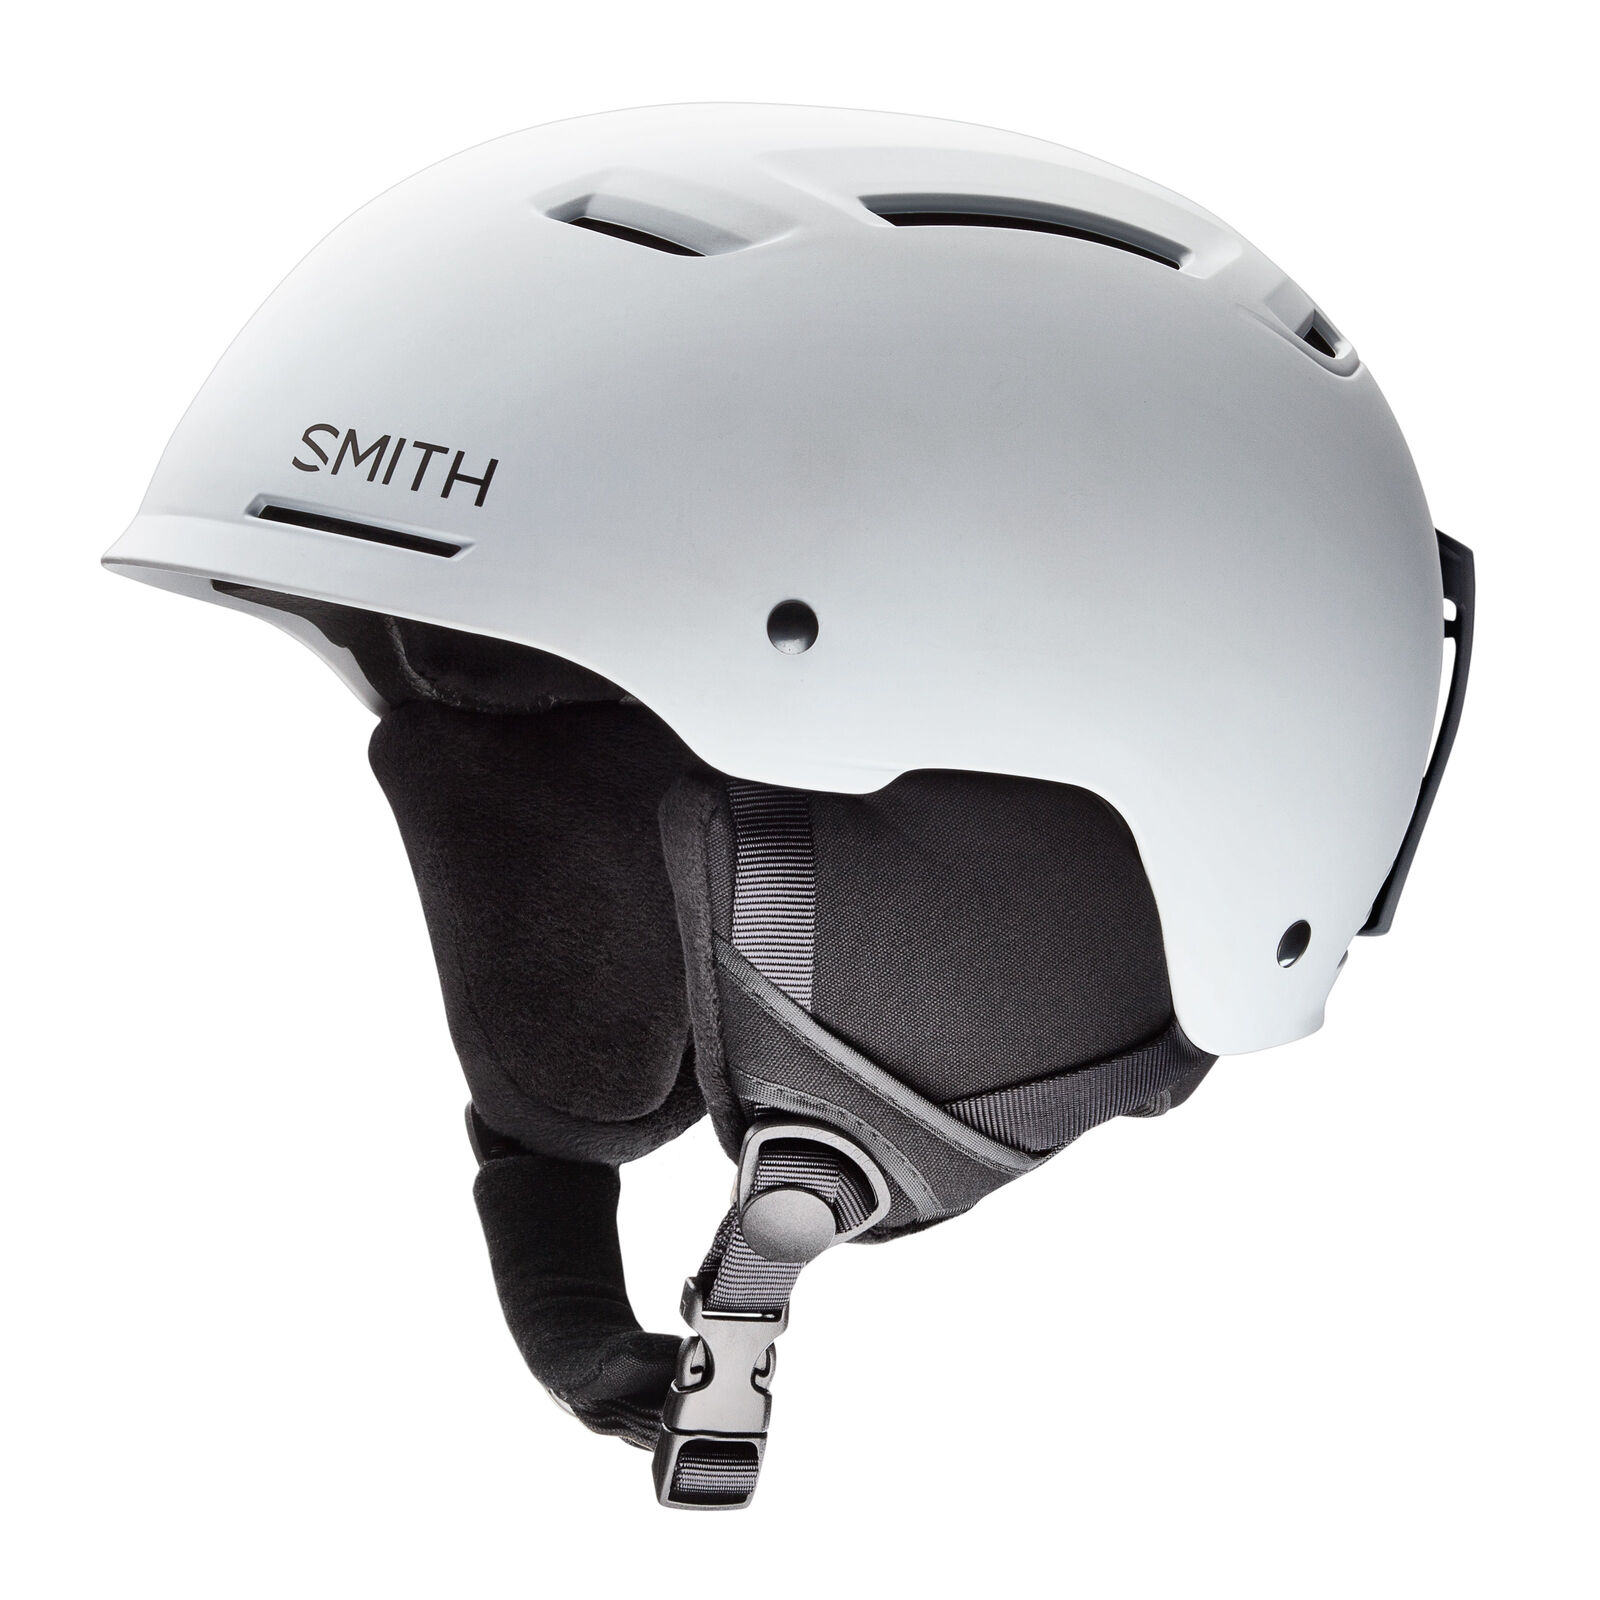 Smith  Casco de Snowboard Esquí Pivote whiteo colors Lisos Ajustable  enjoy saving 30-50% off